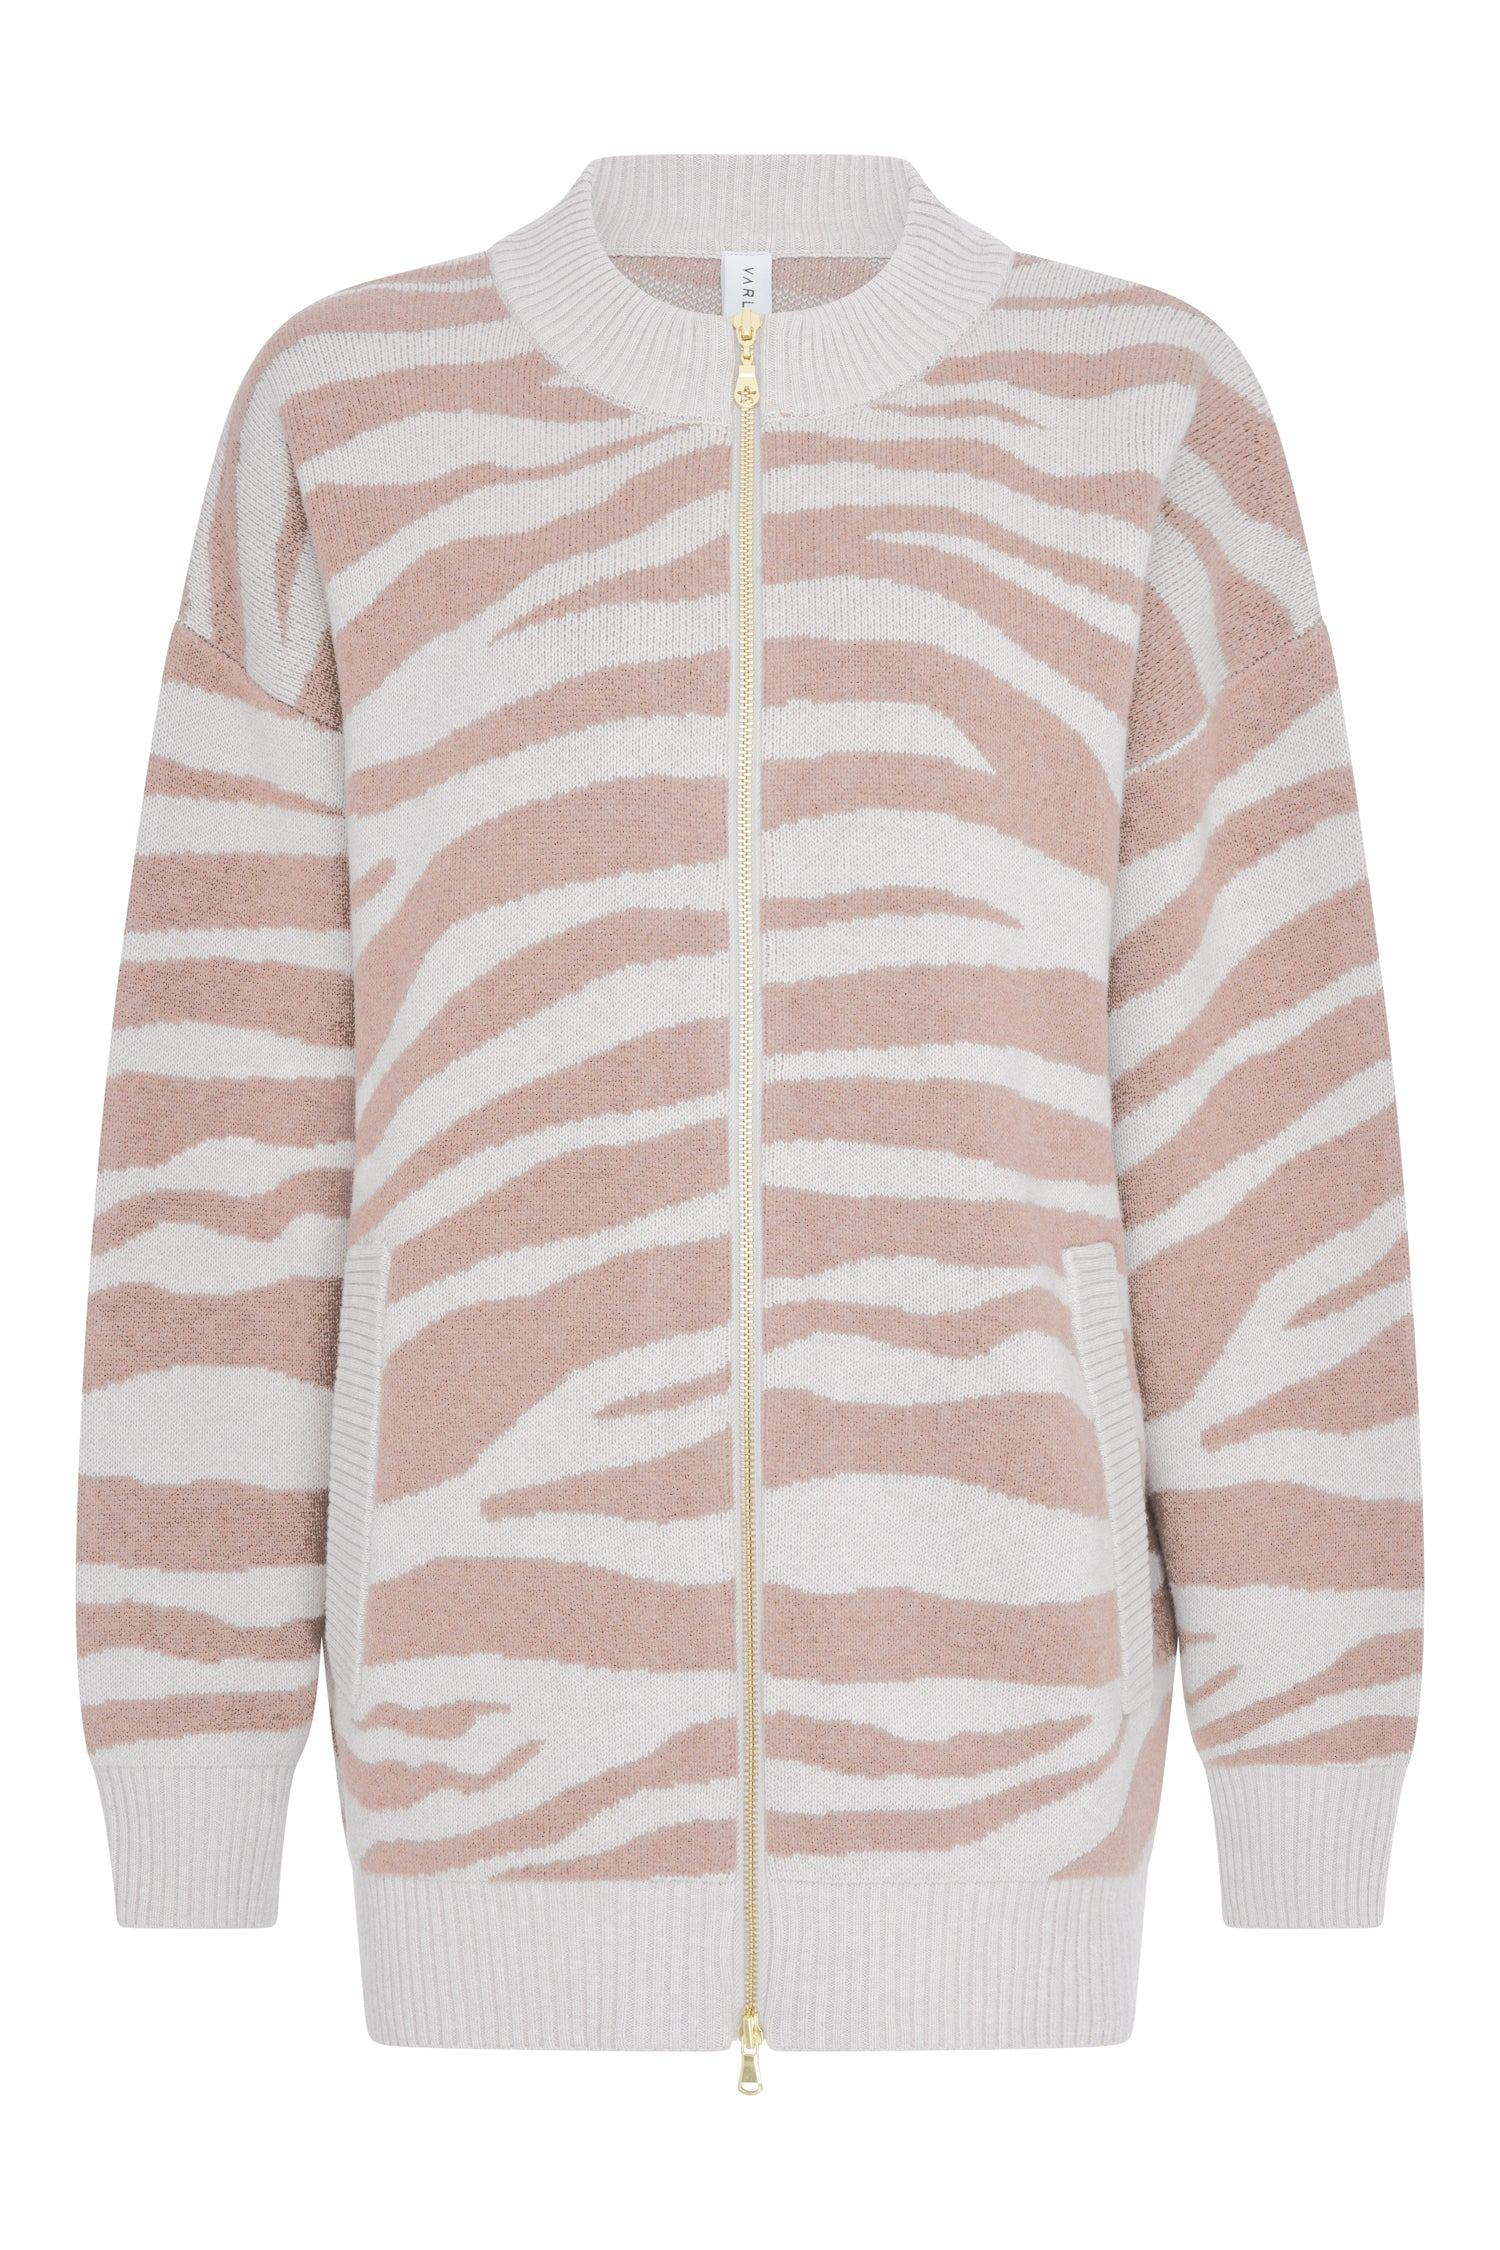 Mayberry Sweater | Blush Zebra